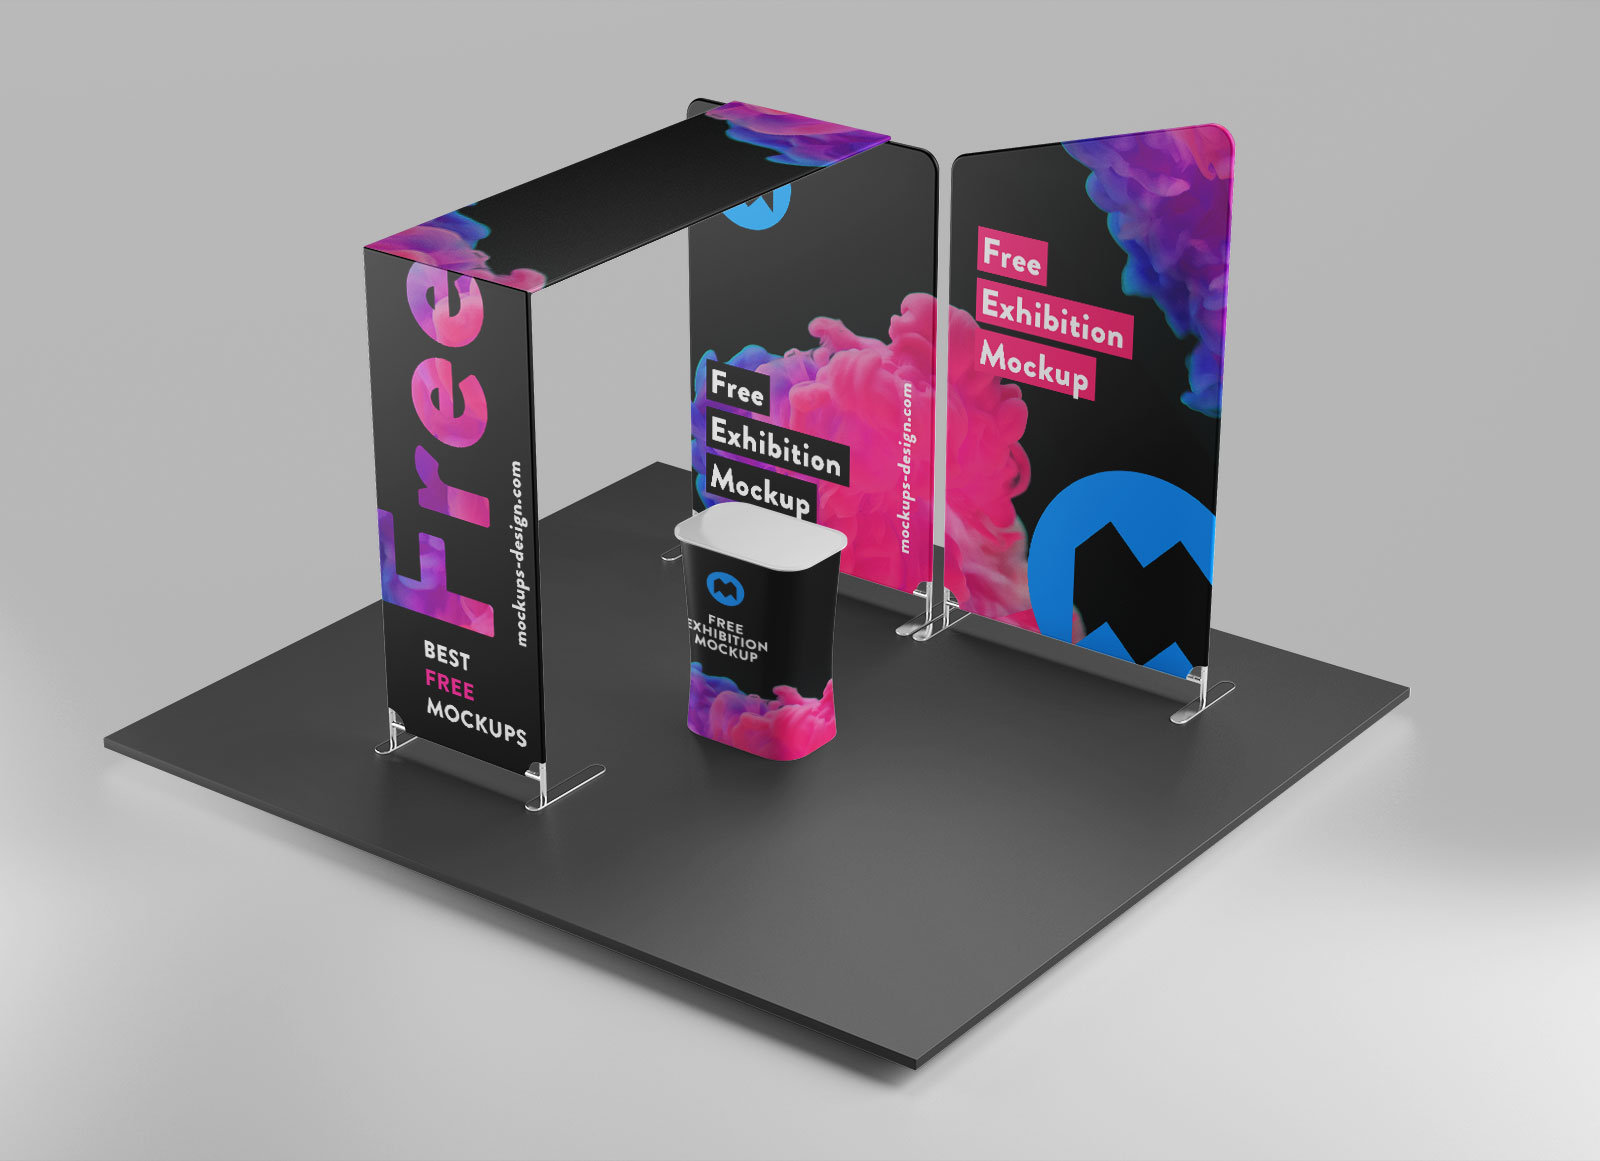 Trade Exhibition Stand Mockup Free : Free trade show exhibition display booth stand mockup psd